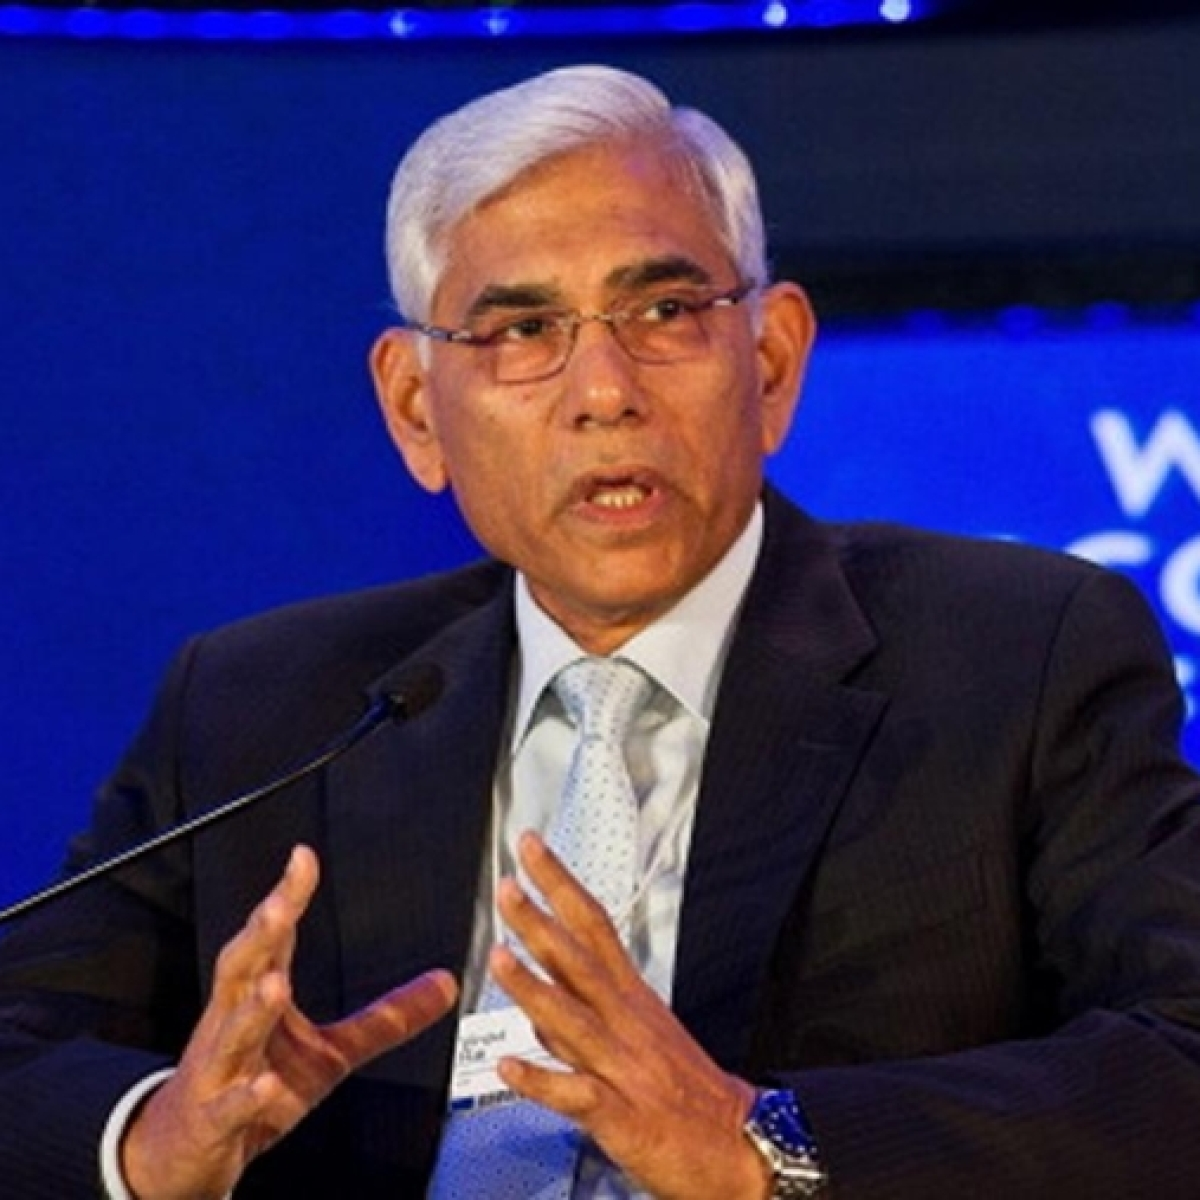 BCCI CoA saw no conflict in Kapil Dev-led CAC: Vinod Rai